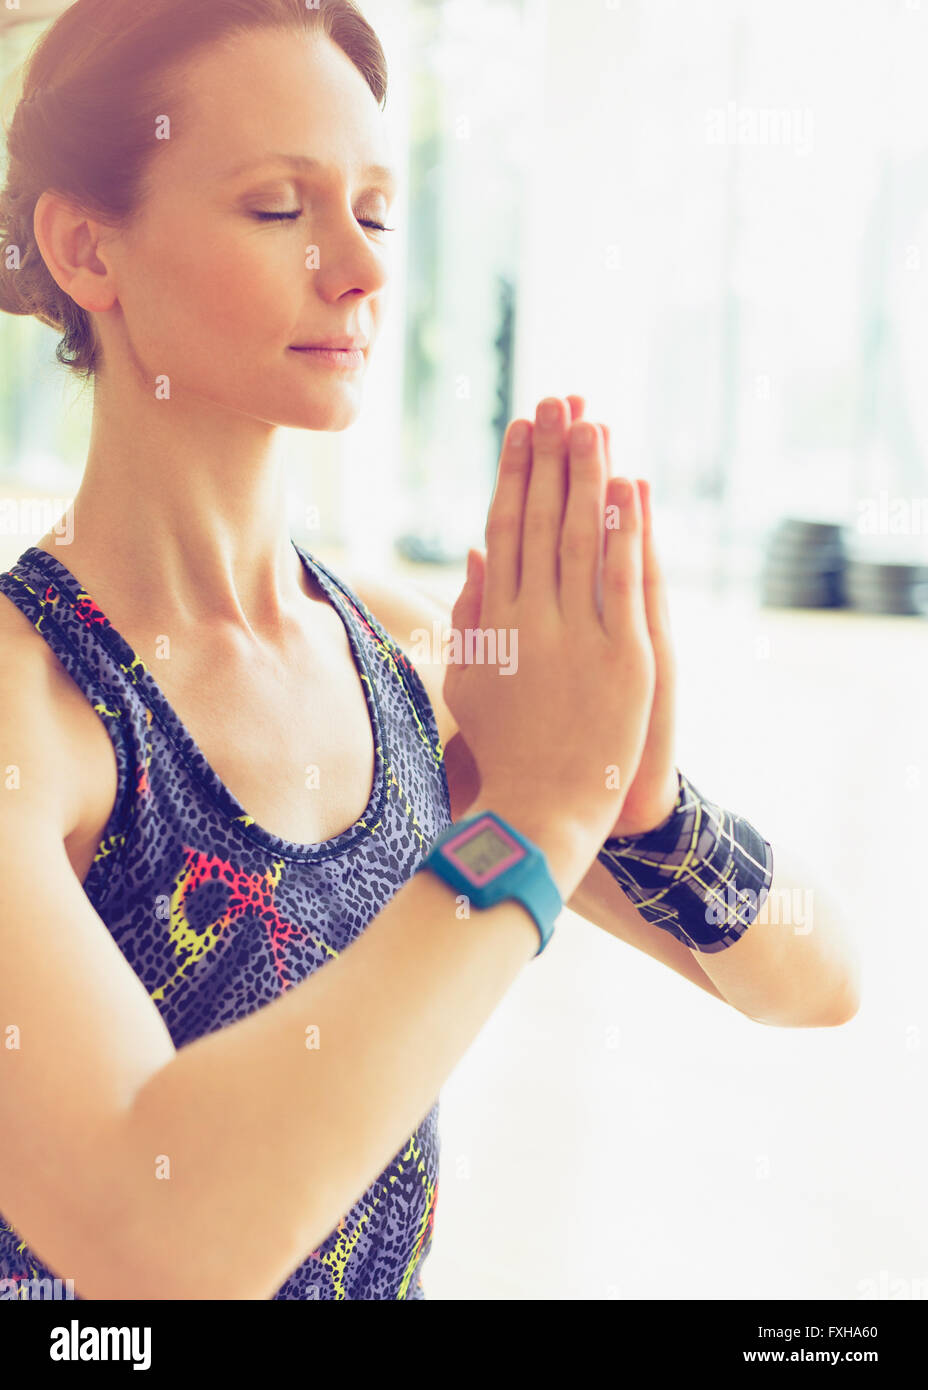 Serene woman practicing yoga with hands clasped - Stock Image